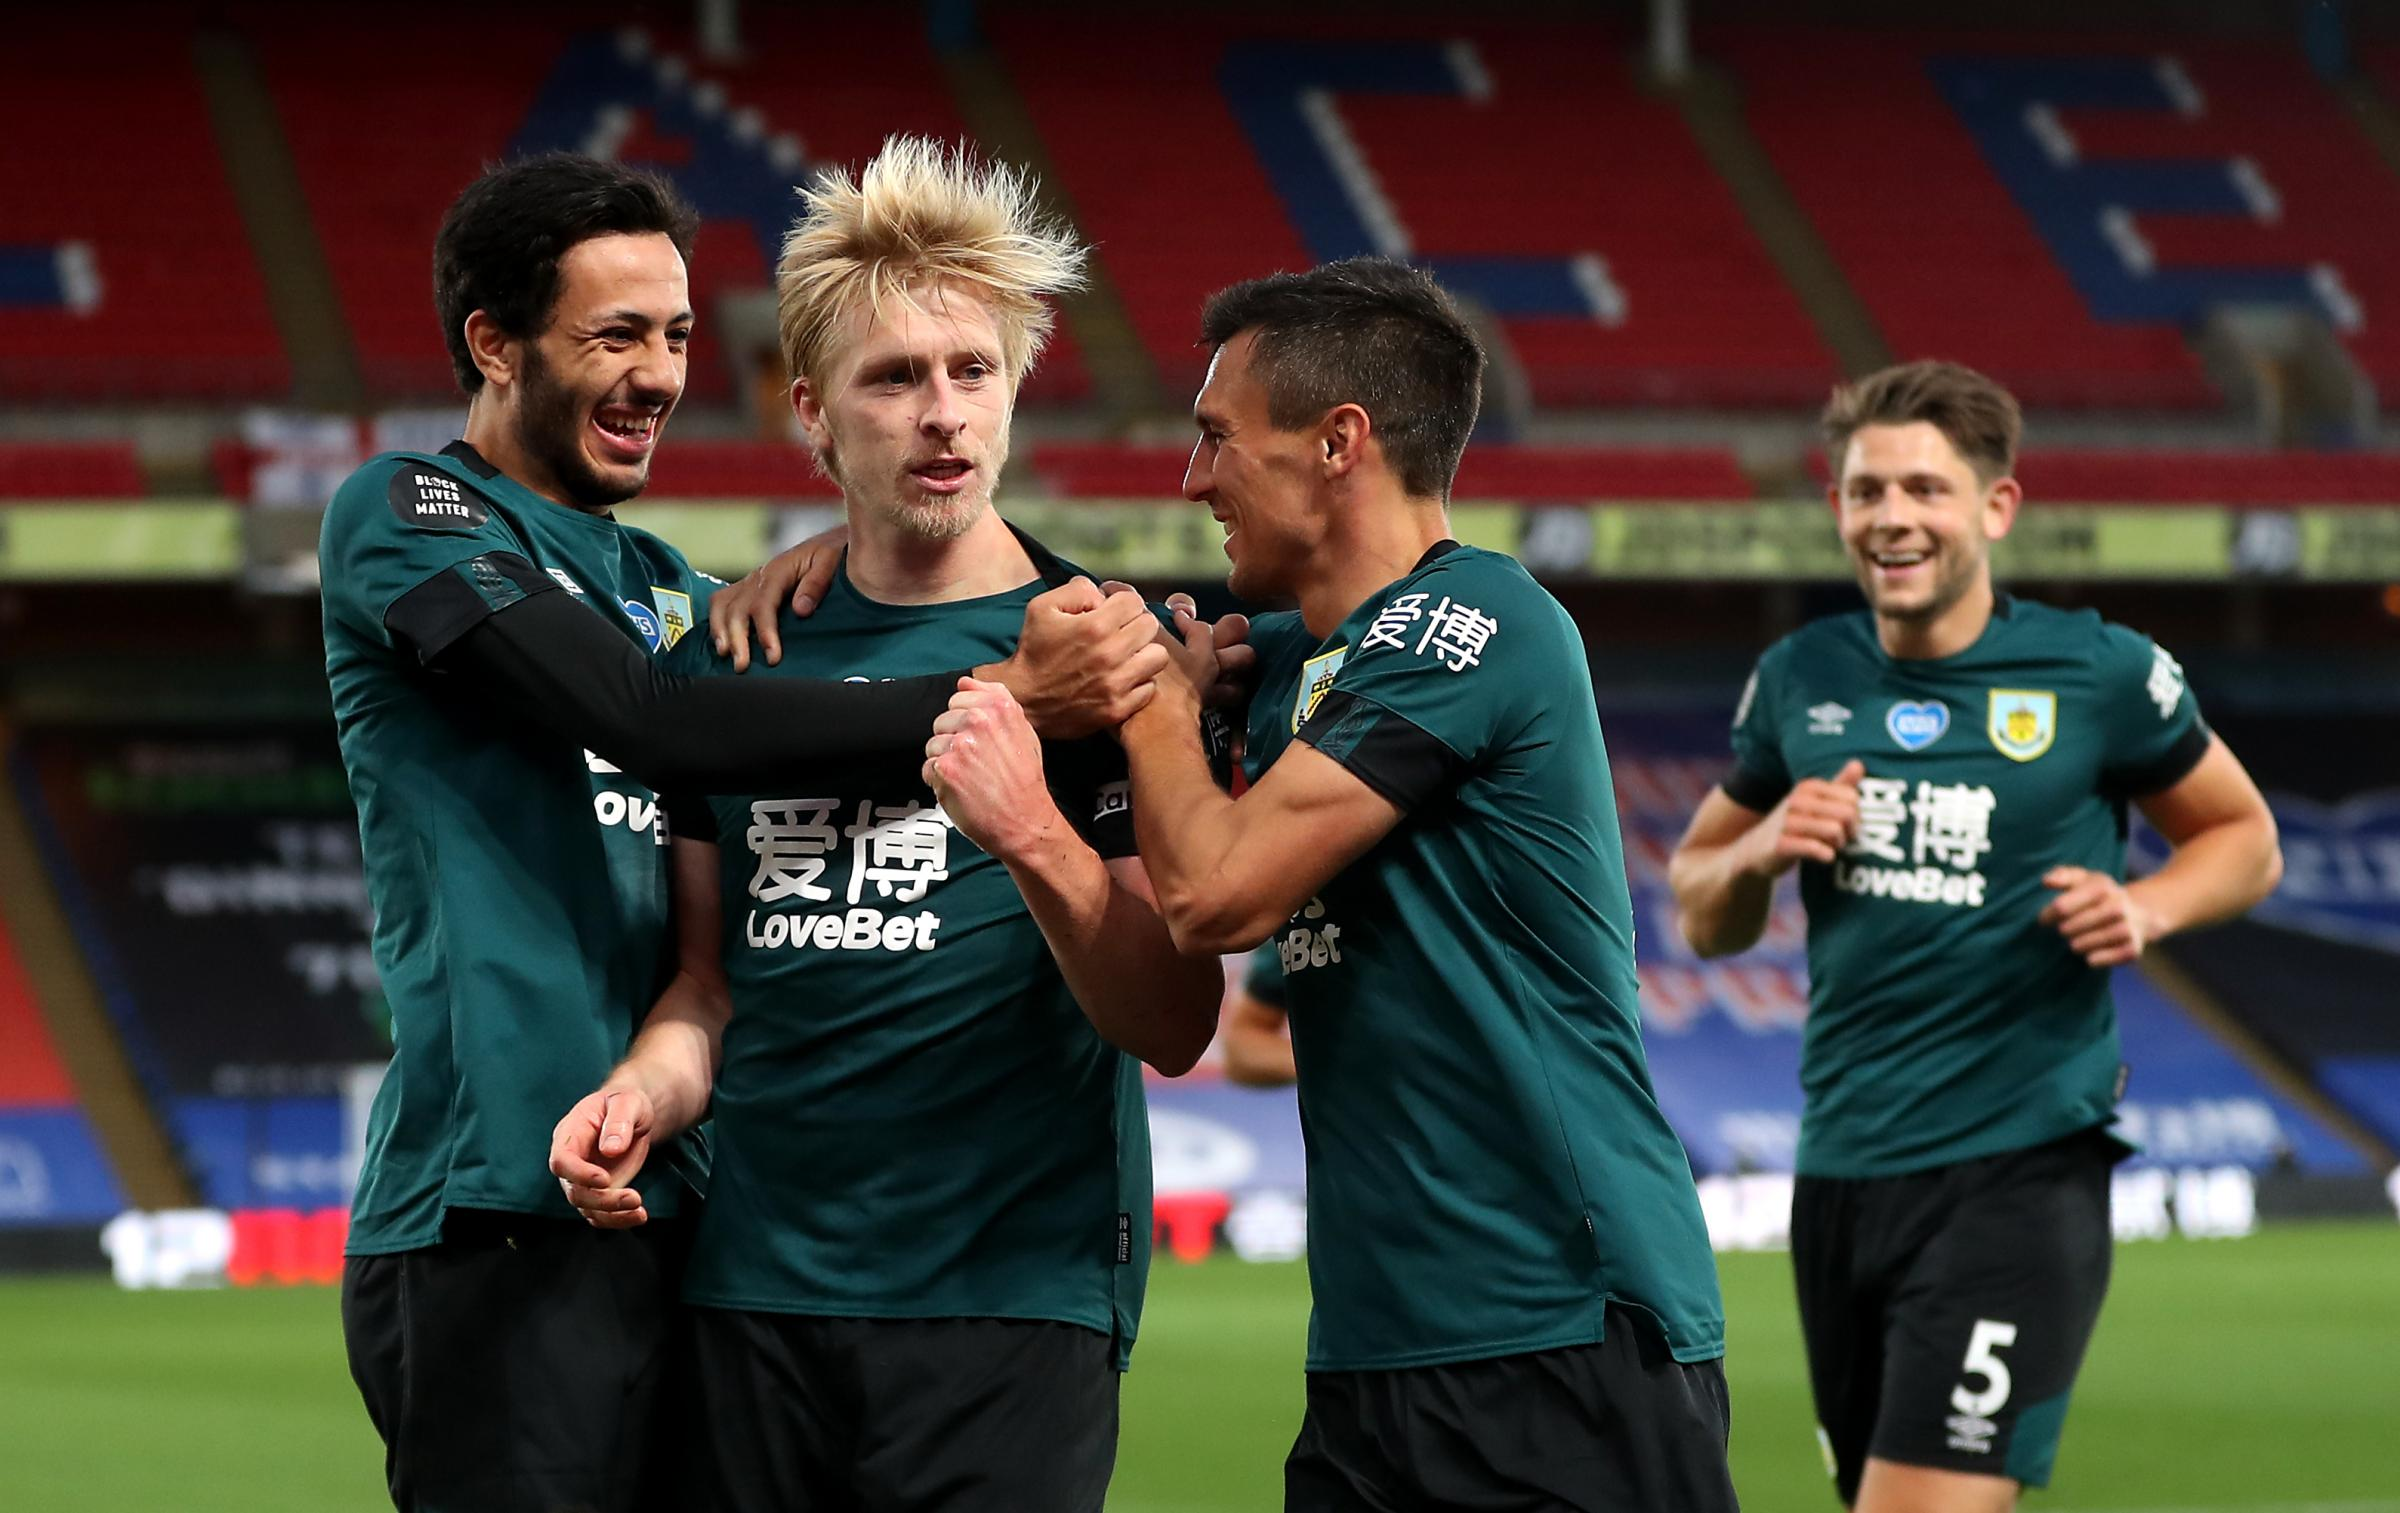 Crystal Palace 0-1 Burnley: Ben Mee marks milestone appearance with winner